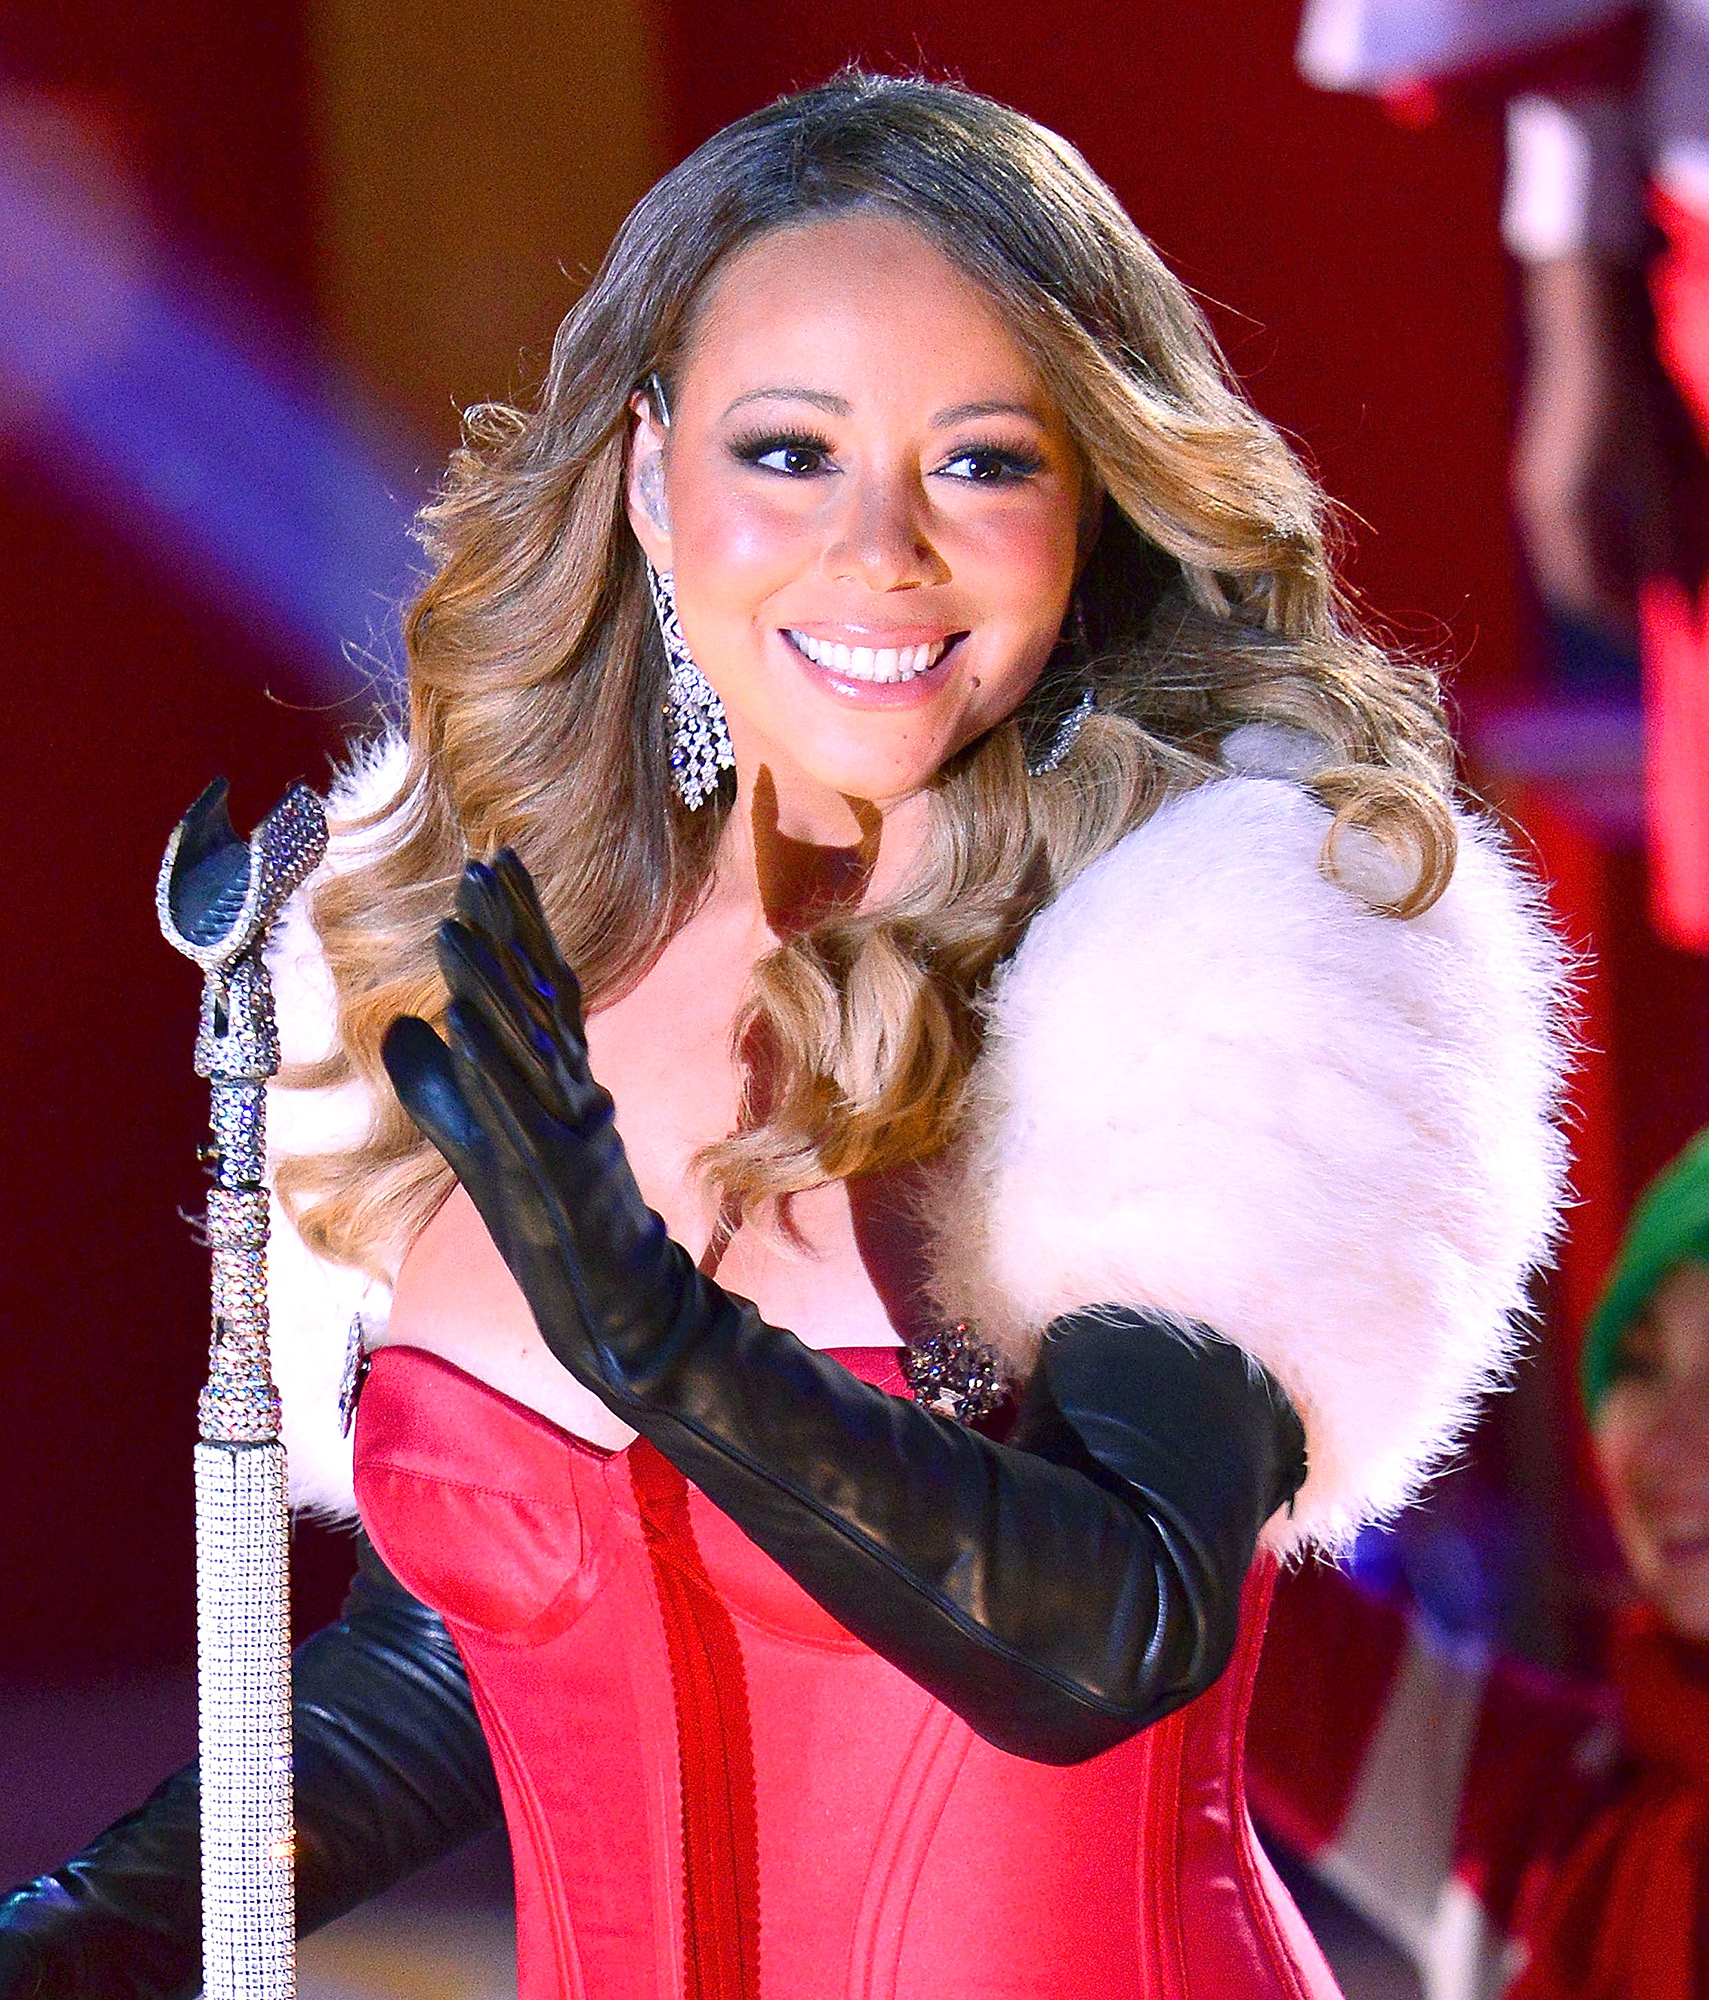 All I Want For Christmas Is You Movie.Mariah Carey Is Making An All I Want For Christmas Is You